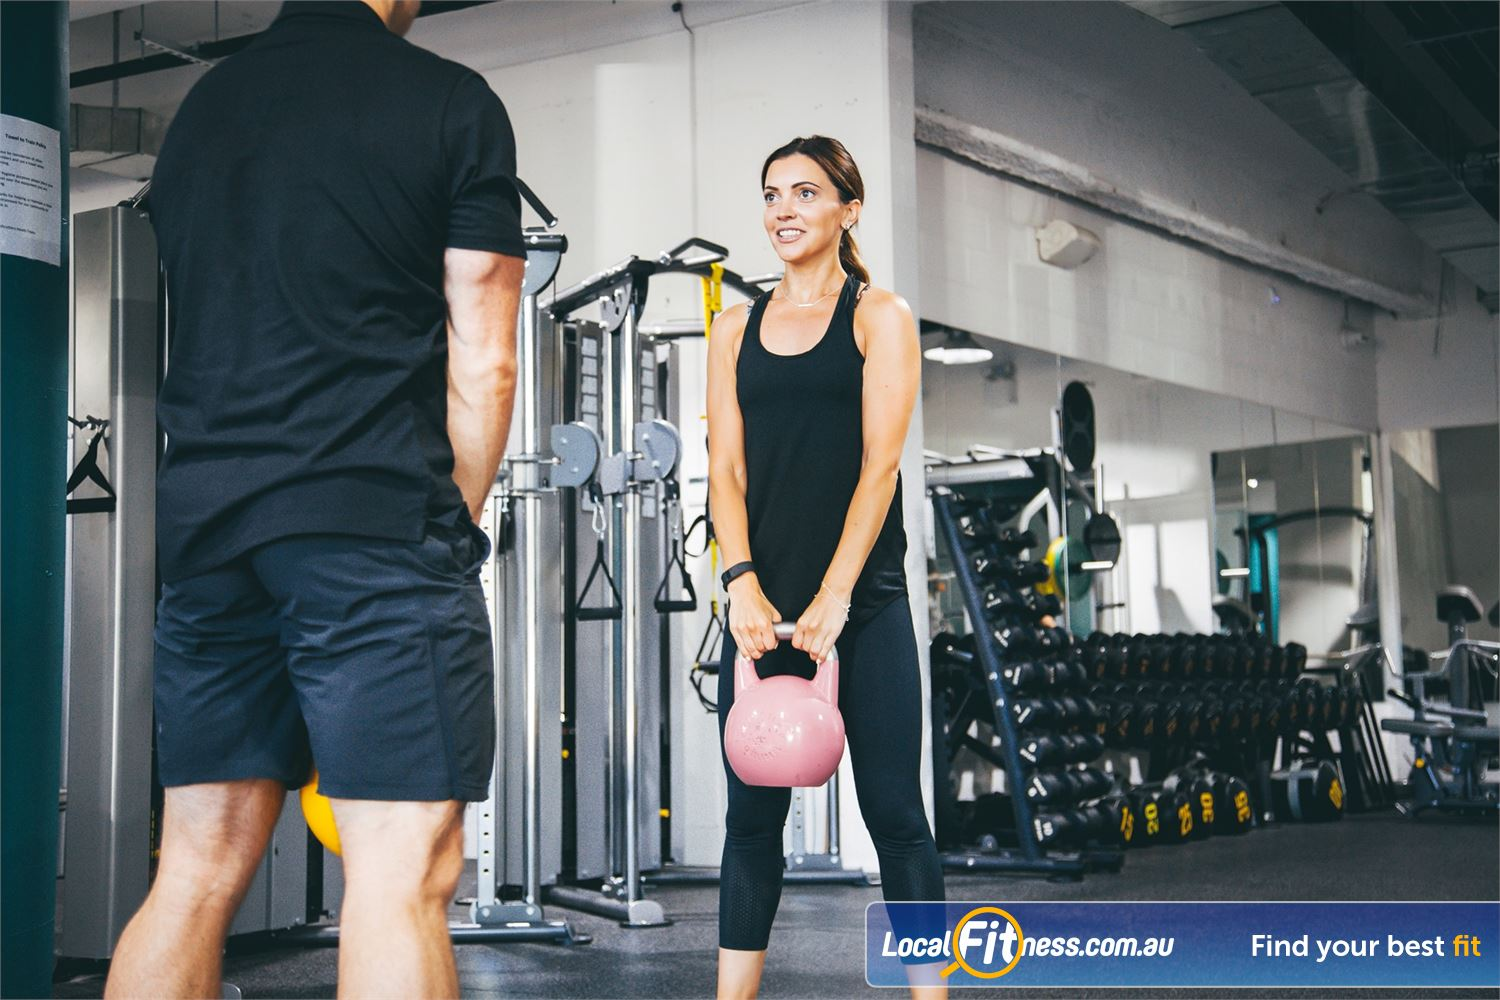 Rushcutters Health Near Woolloomooloo Gym memberships are capped at 250 people, to ensure it is never too crowded.